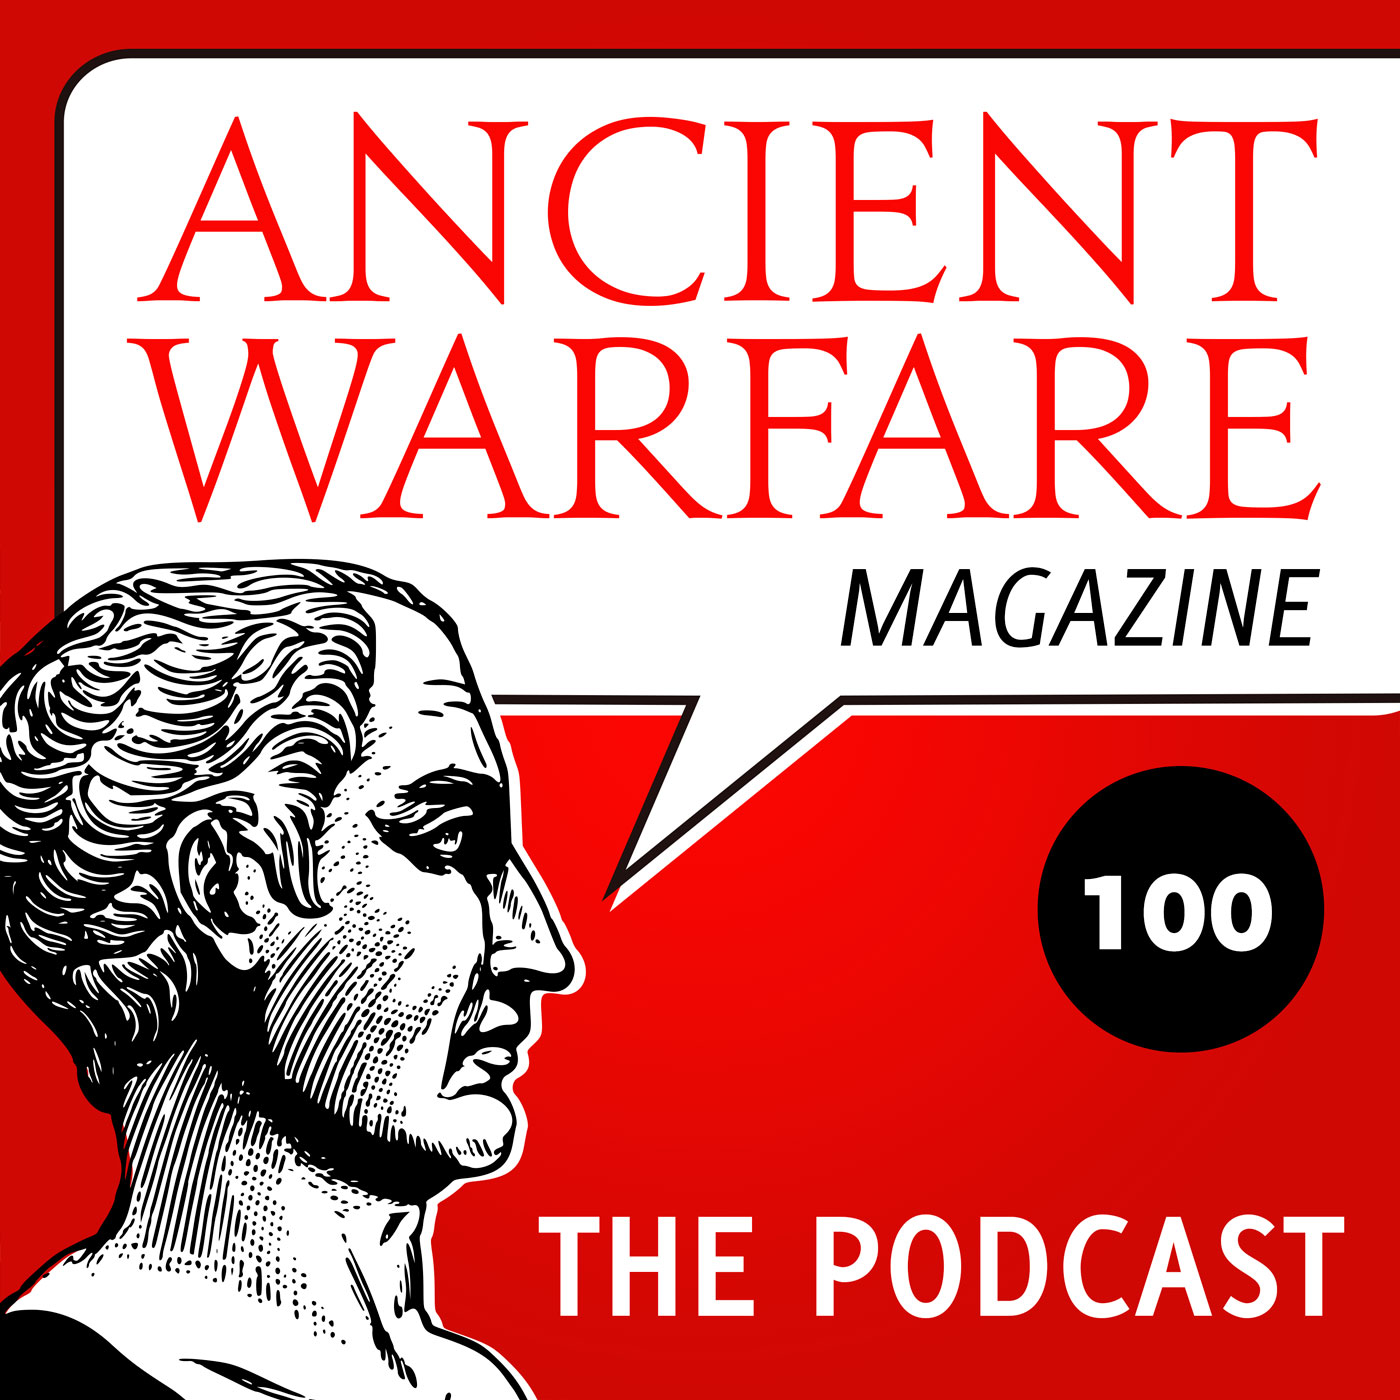 Episode 100 - Any questions answered